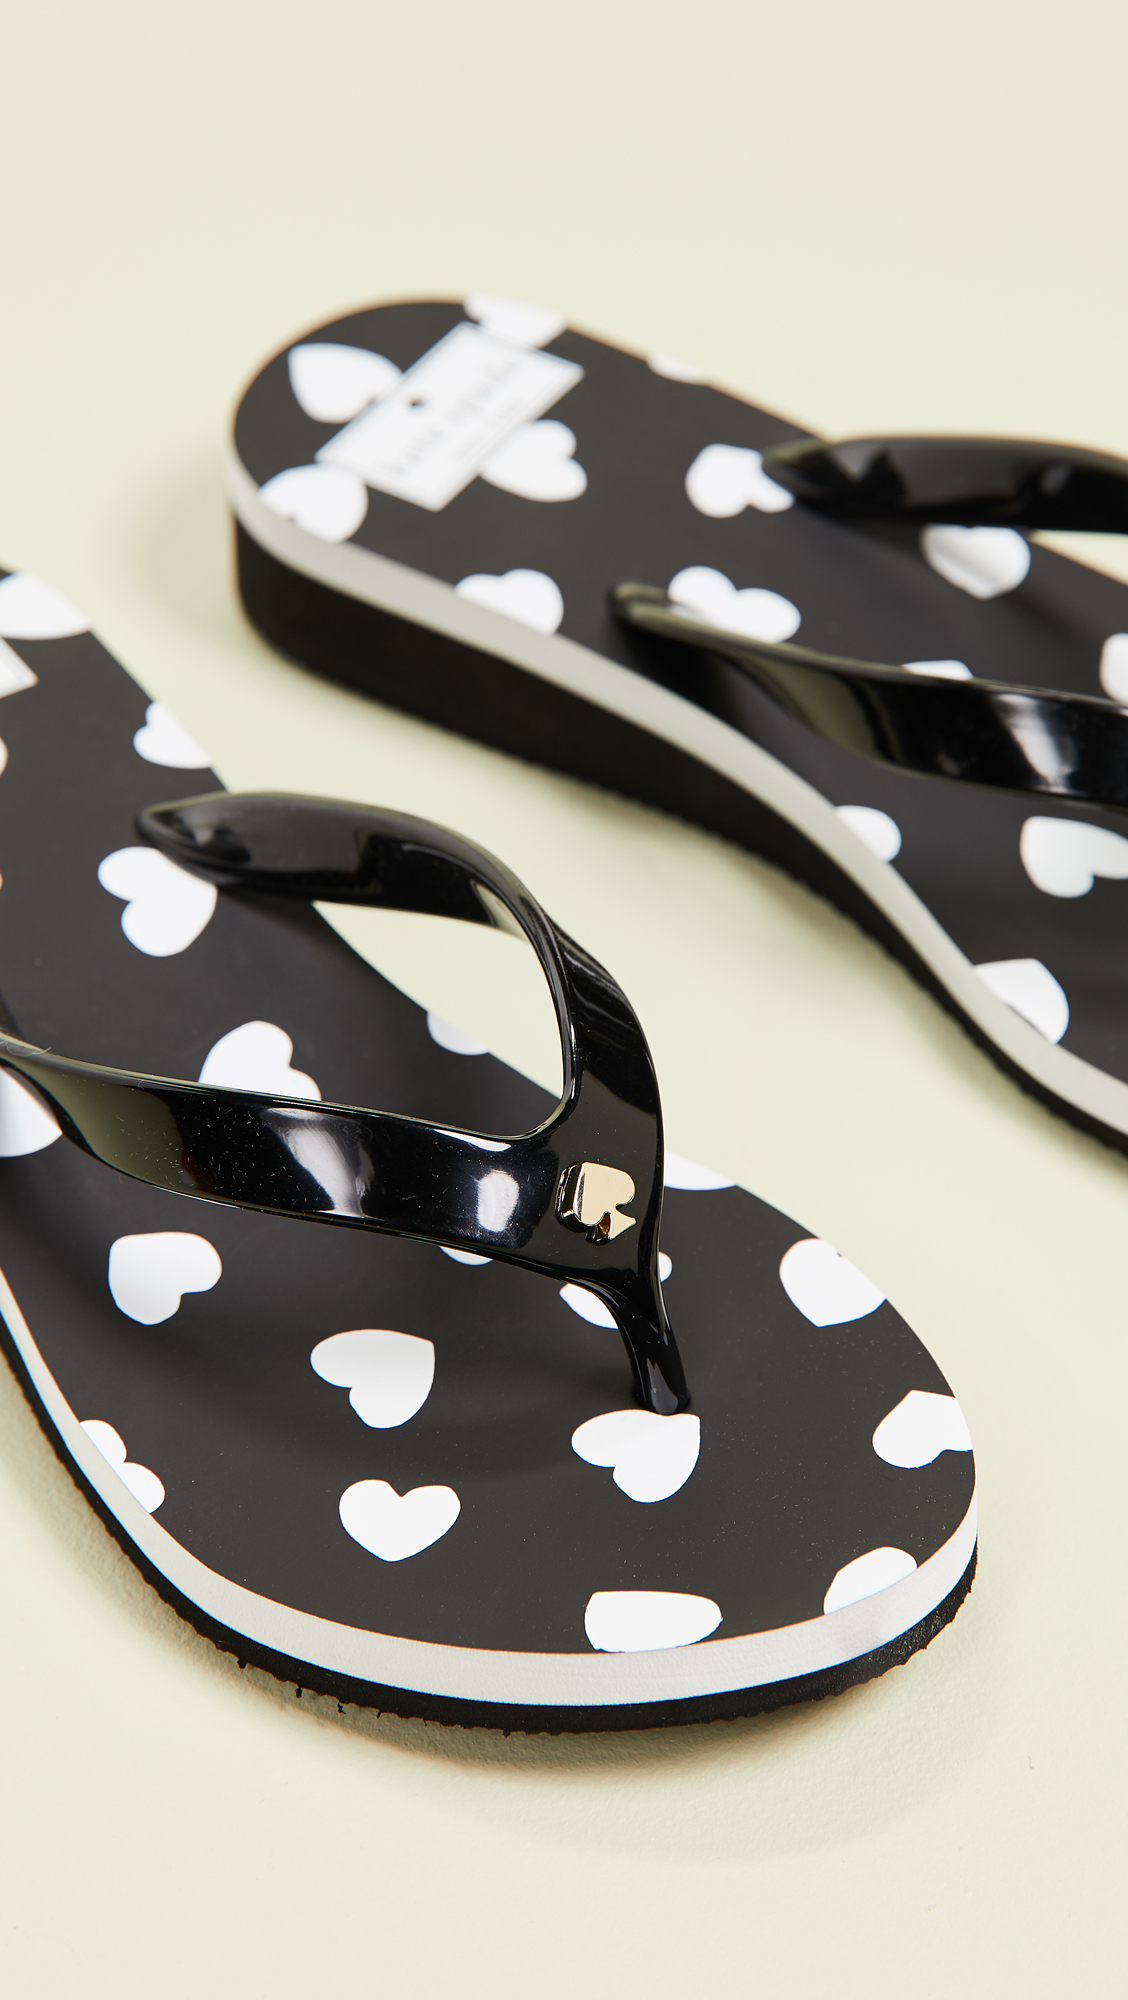 ff0e71da5cd3 Kate Spade New York Milli Flip Flops